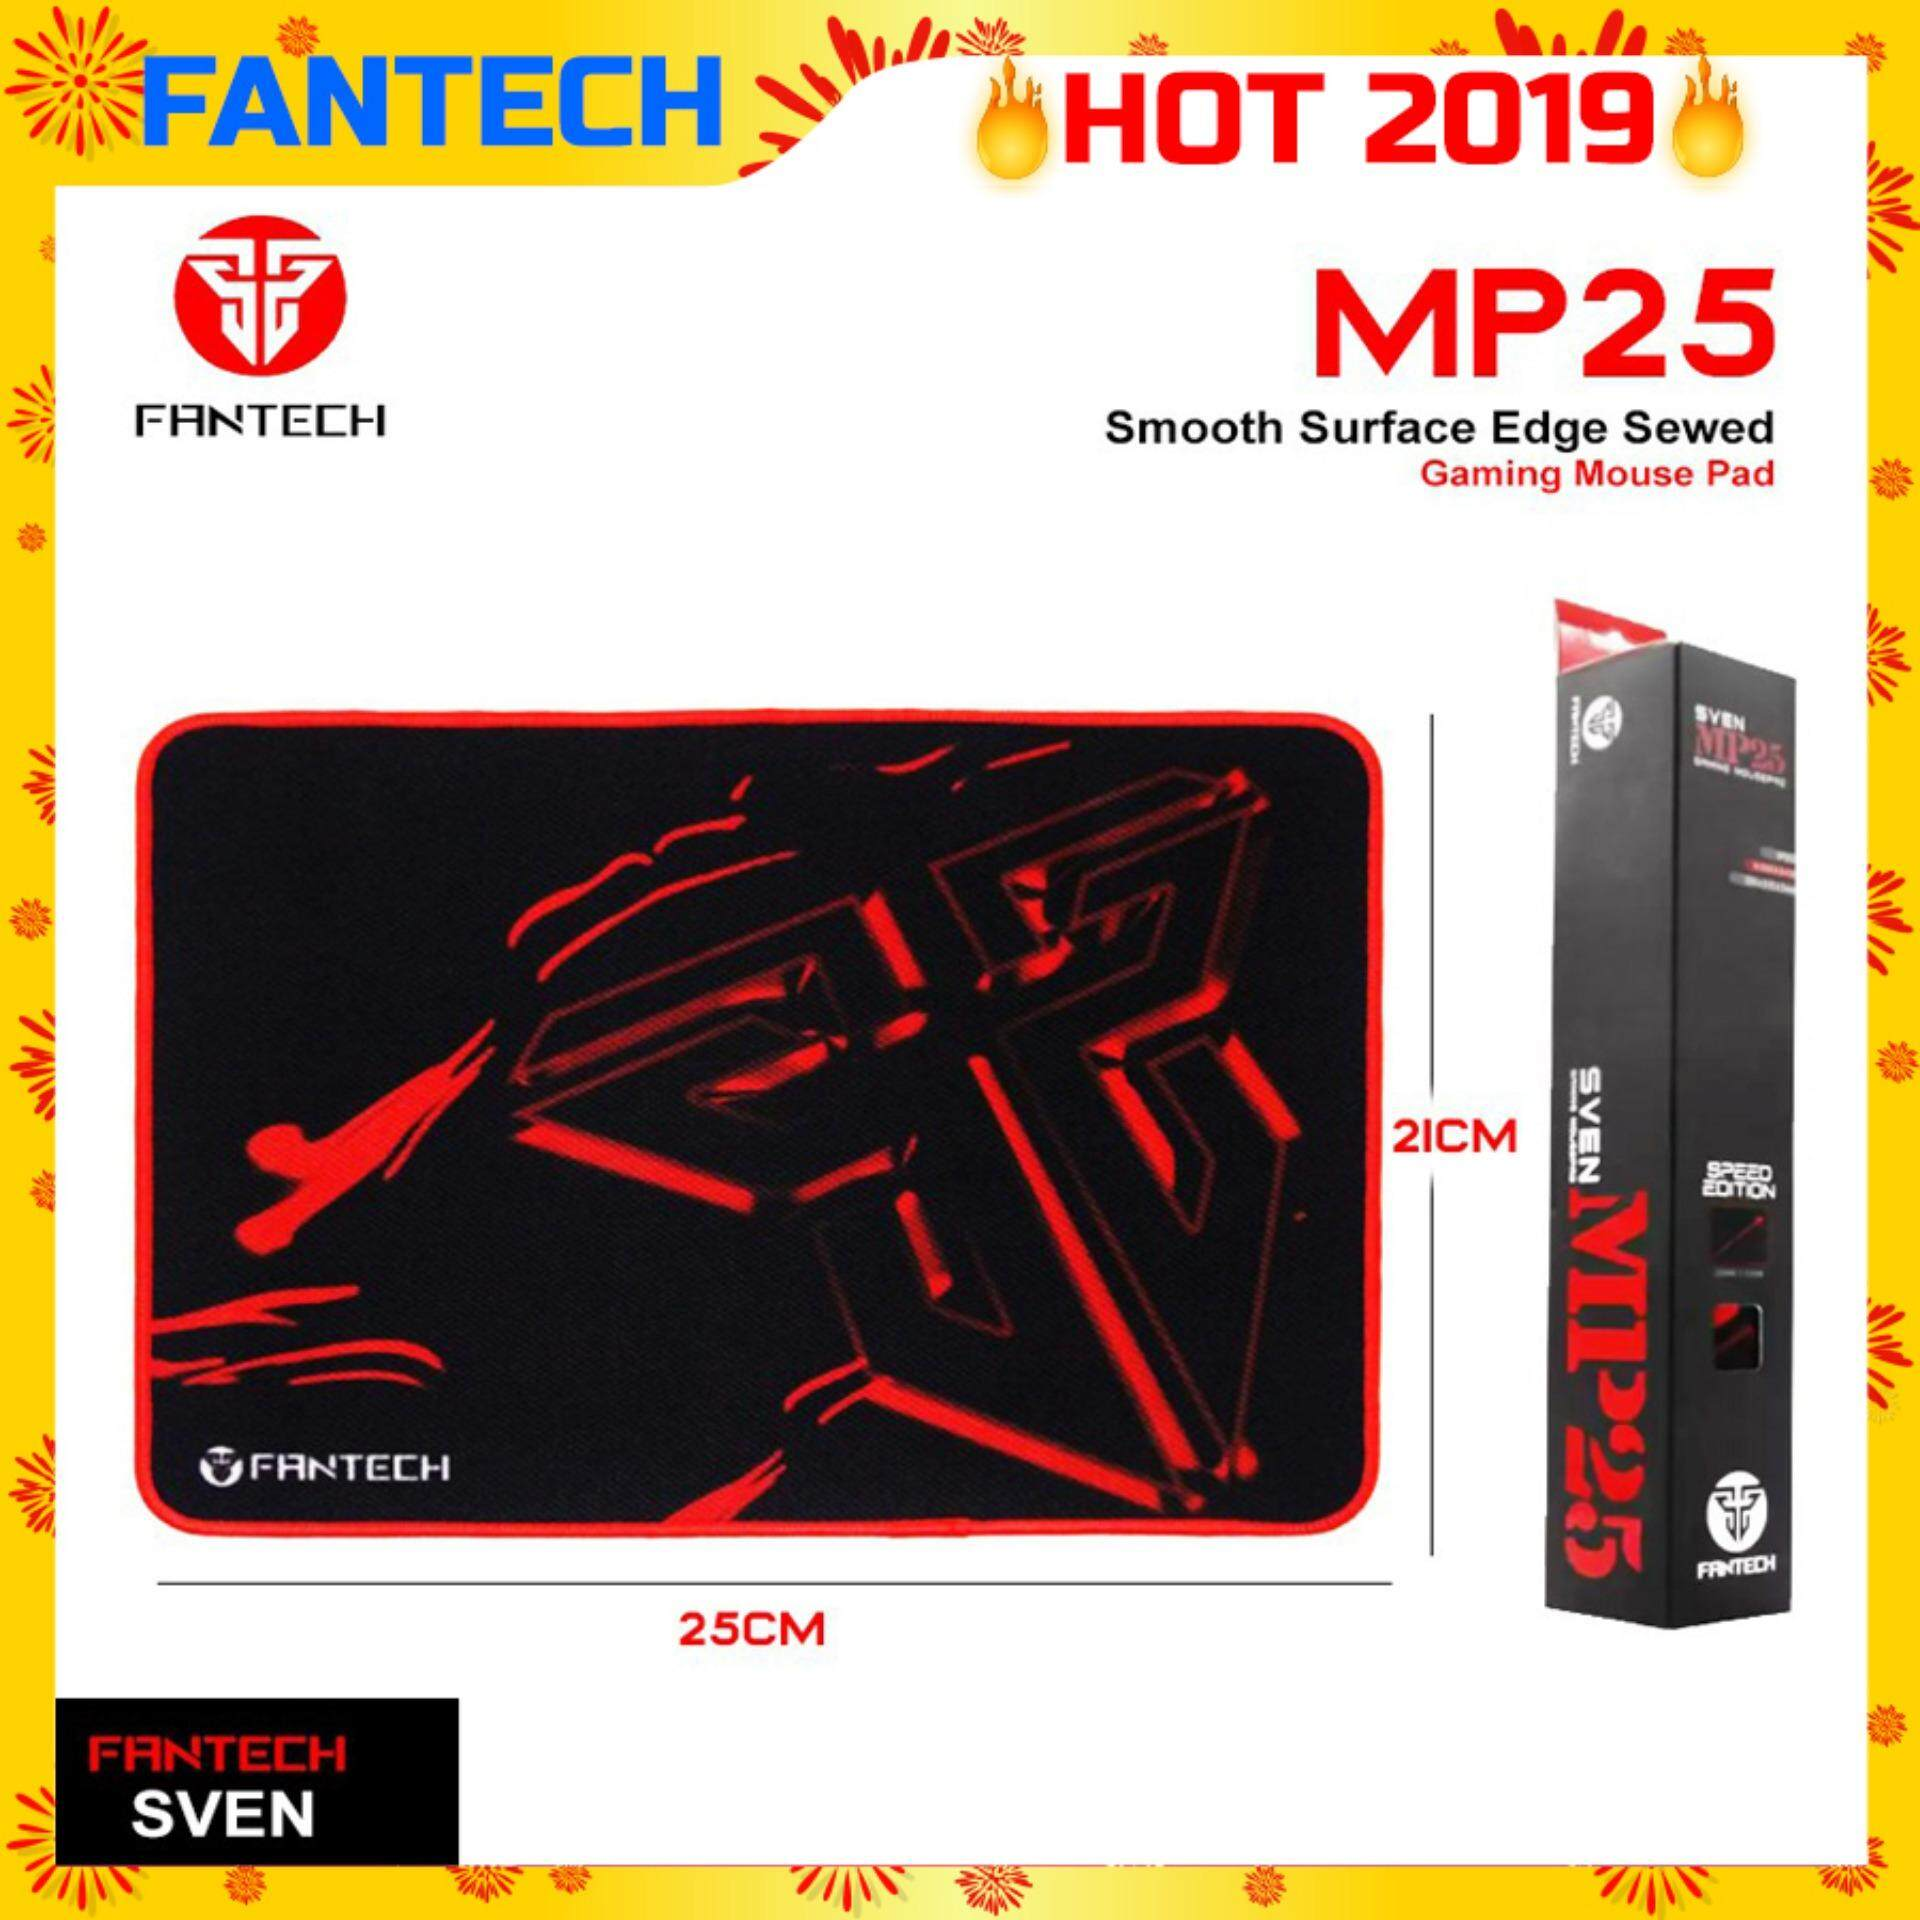 Fantech SVEN MP25 High Non-Slip Base Gaming Mouse Pad with Edge Sewed (Black mix Red) Malaysia